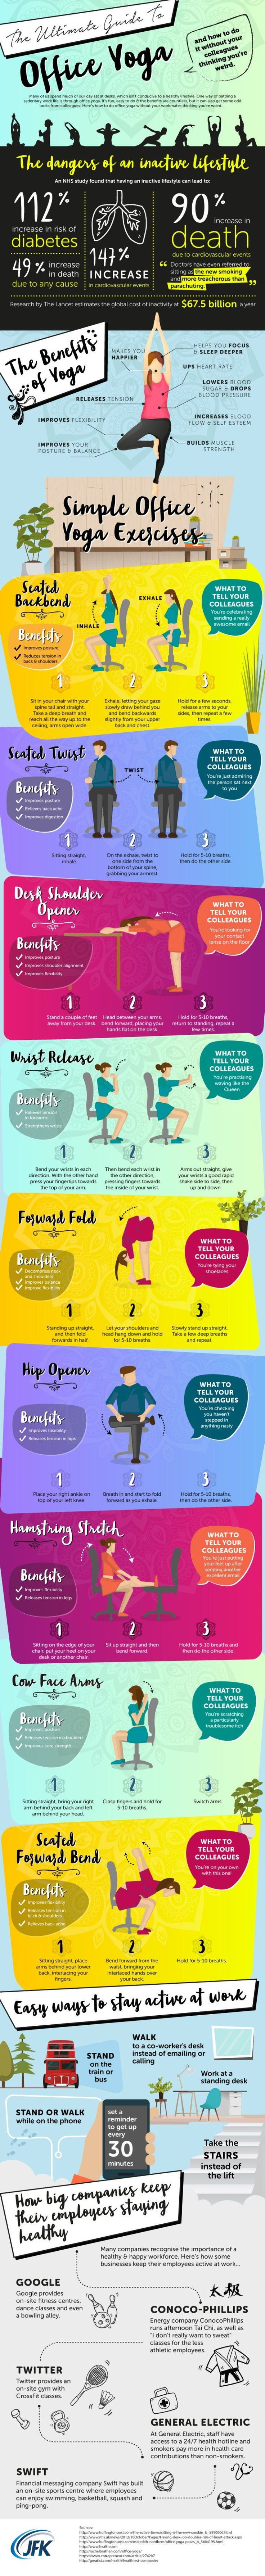 9 Yoga Poses You Can Do At Your Desk Without Looking Really Weird (Infographic)